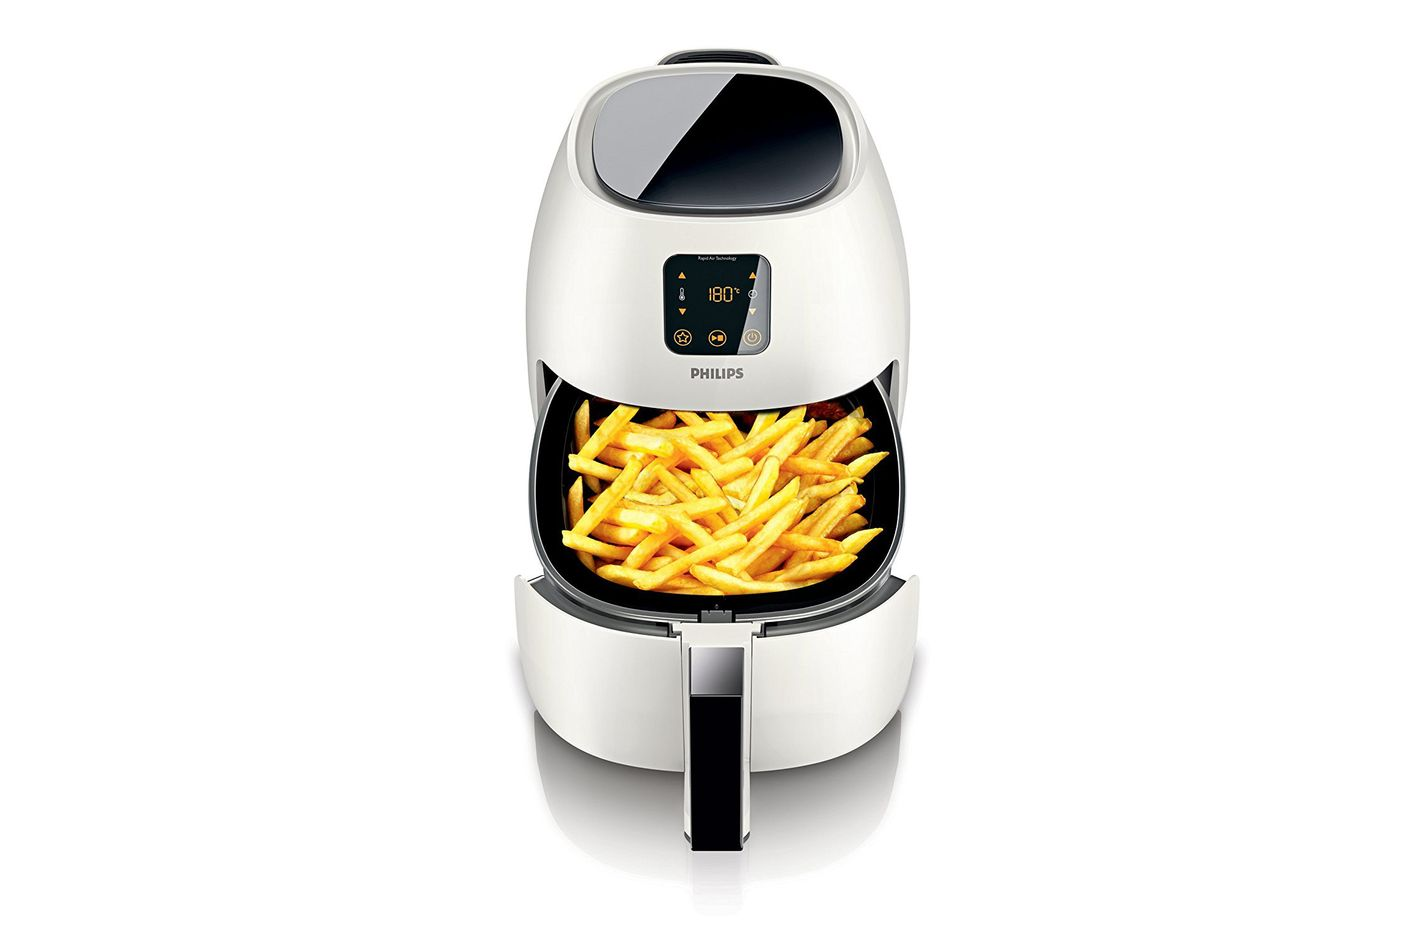 Philips the Original Airfryer